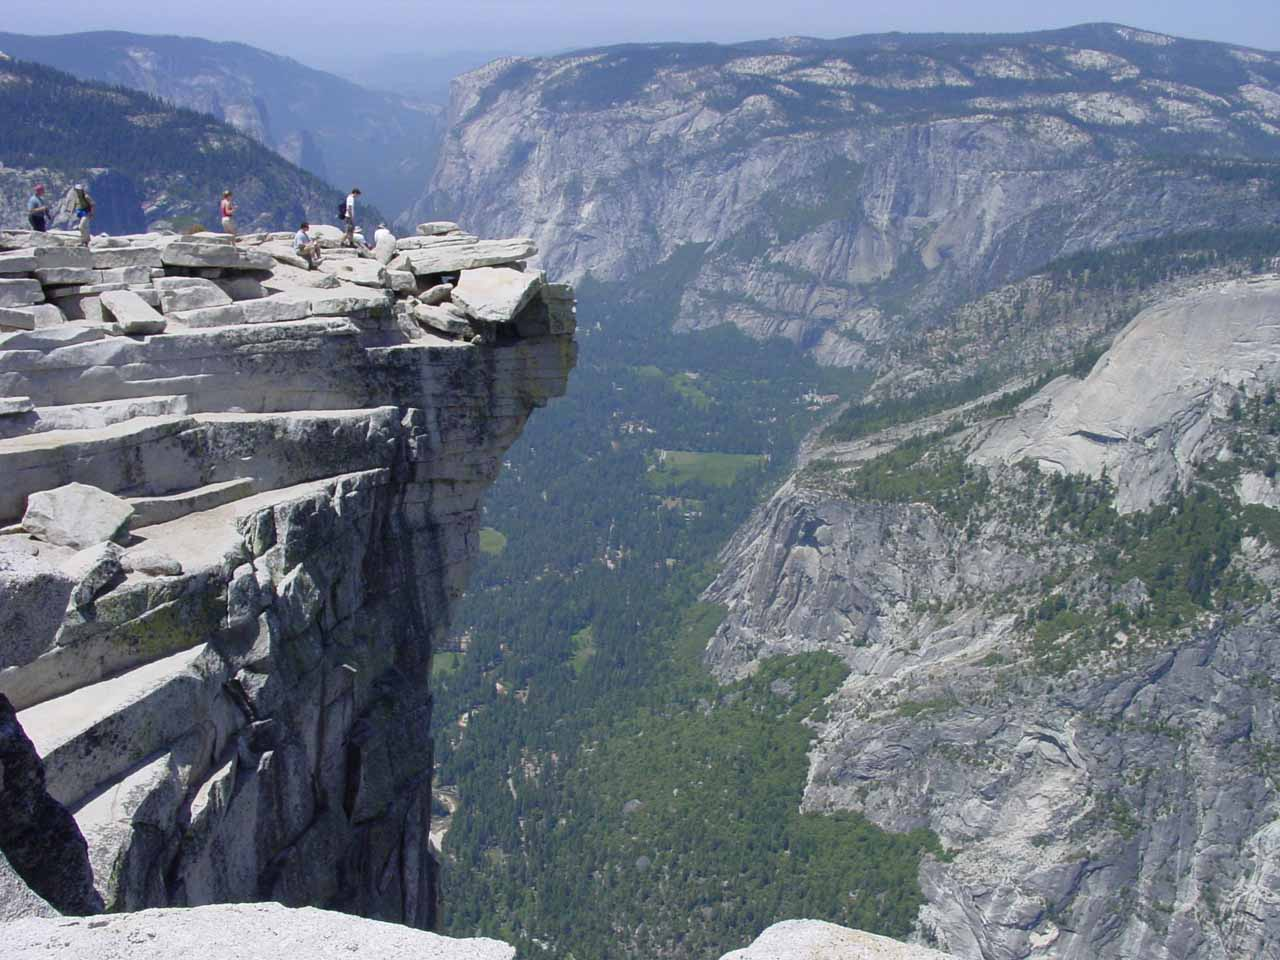 The Diving Board atop Half Dome